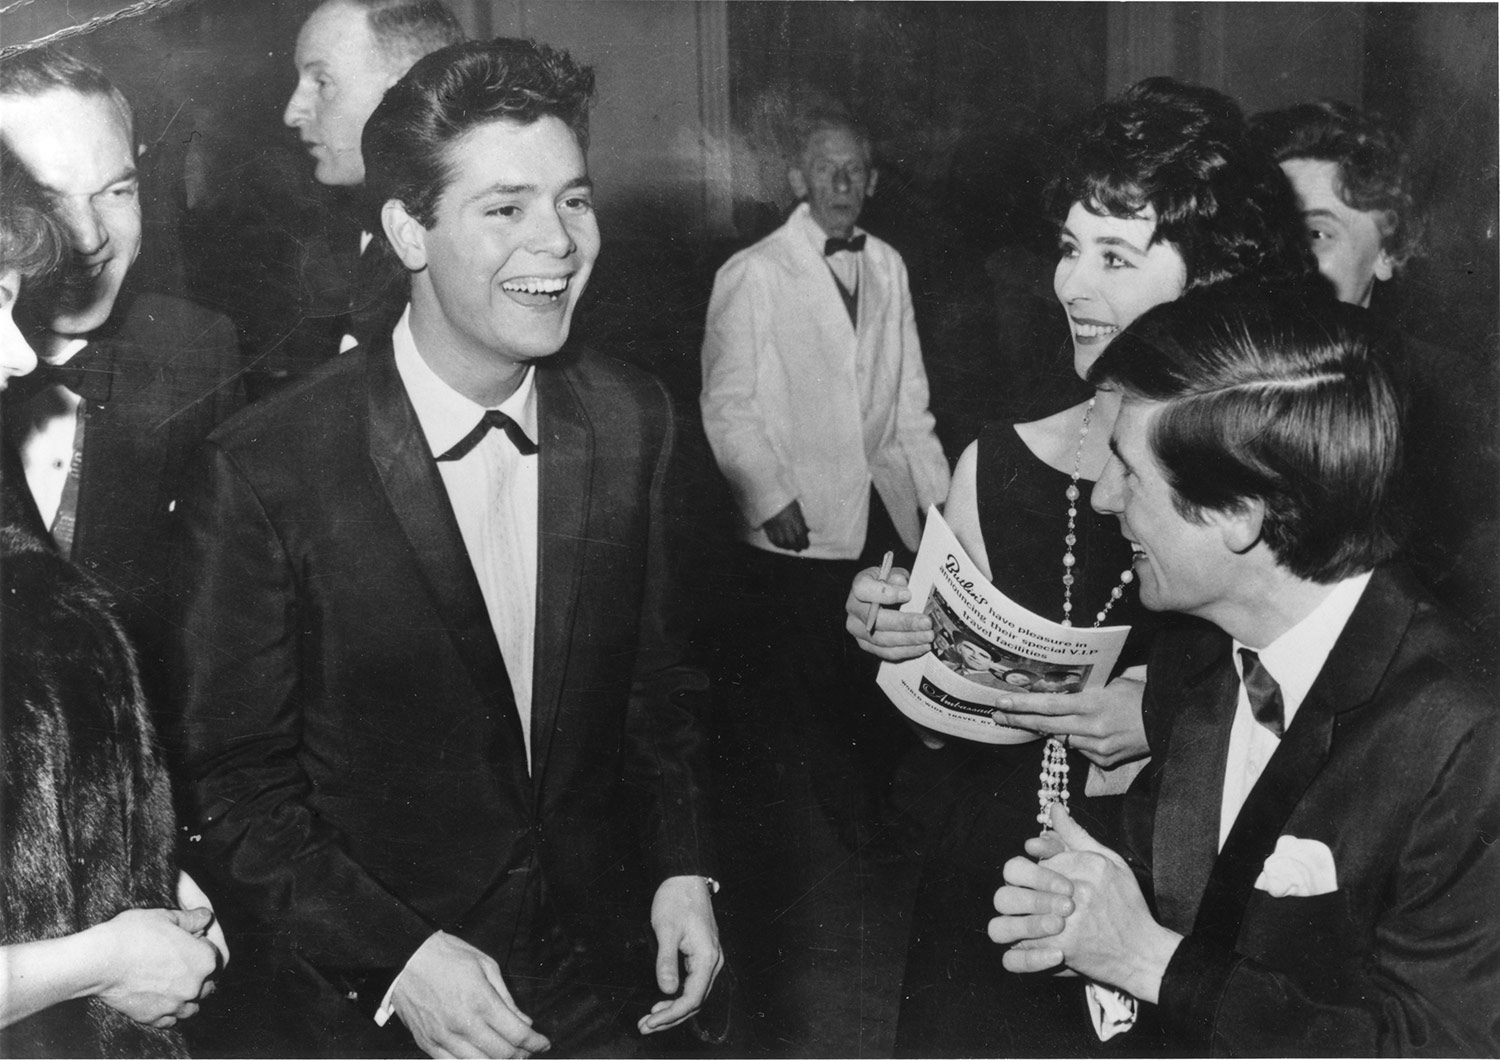 Cliff Richard at the ABC Cinema, 1962